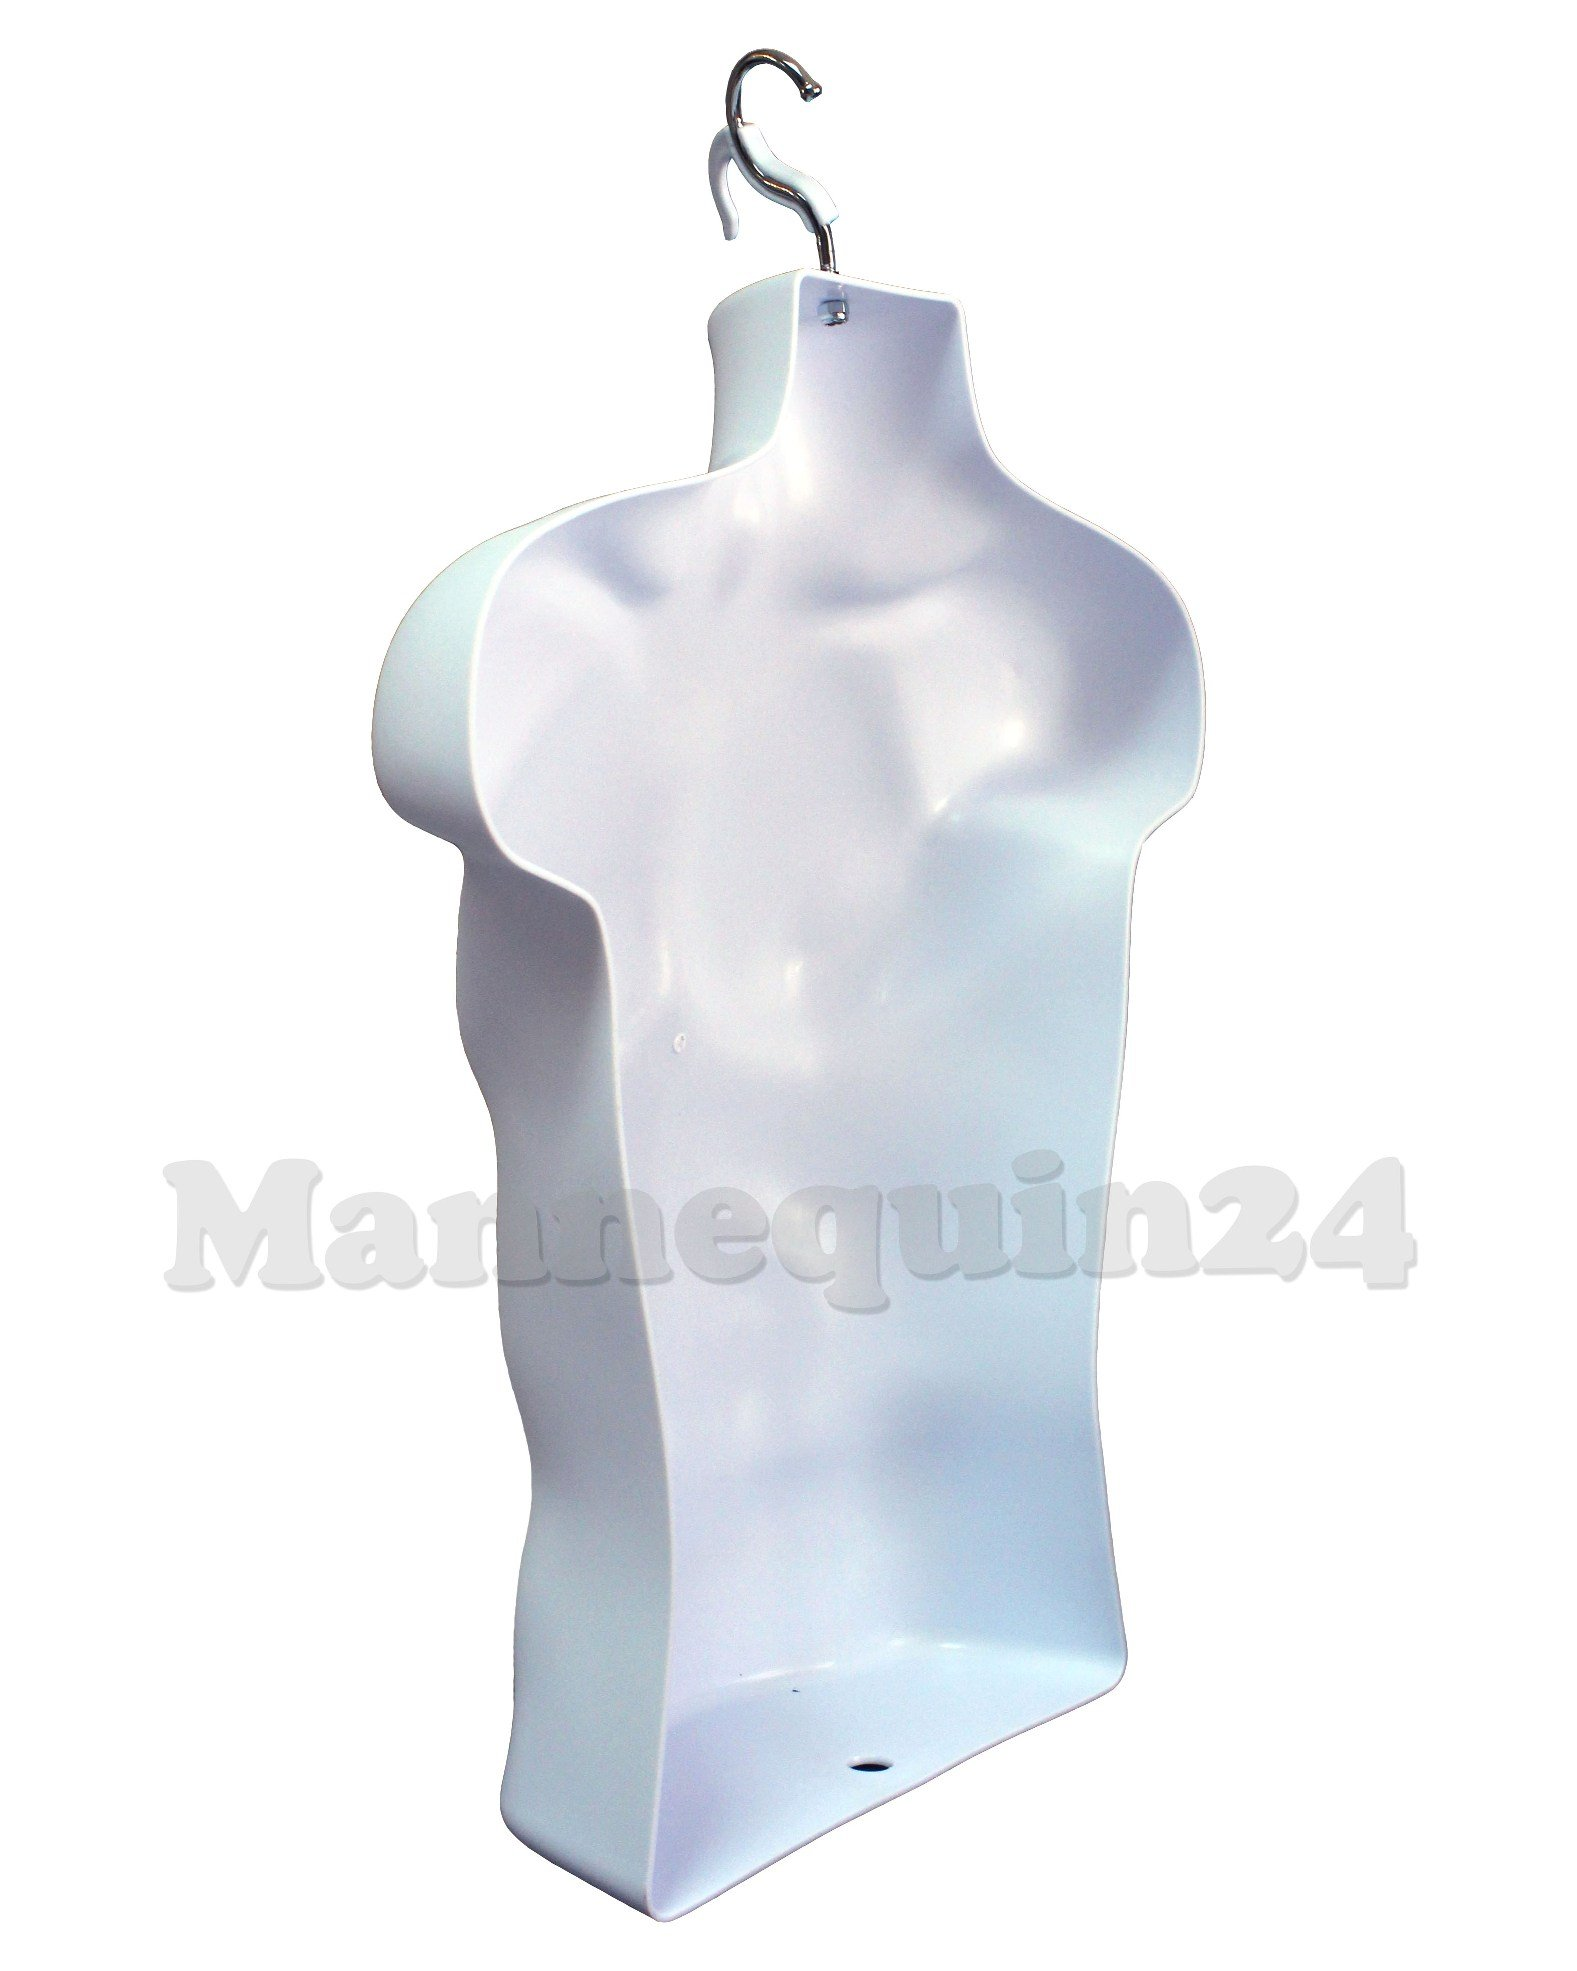 DisplayTown Mannequin Forms Male and Female Torso with Metal Stand and Hook for Hanging Pants, Waist Long, White by DisplayTown (Image #8)